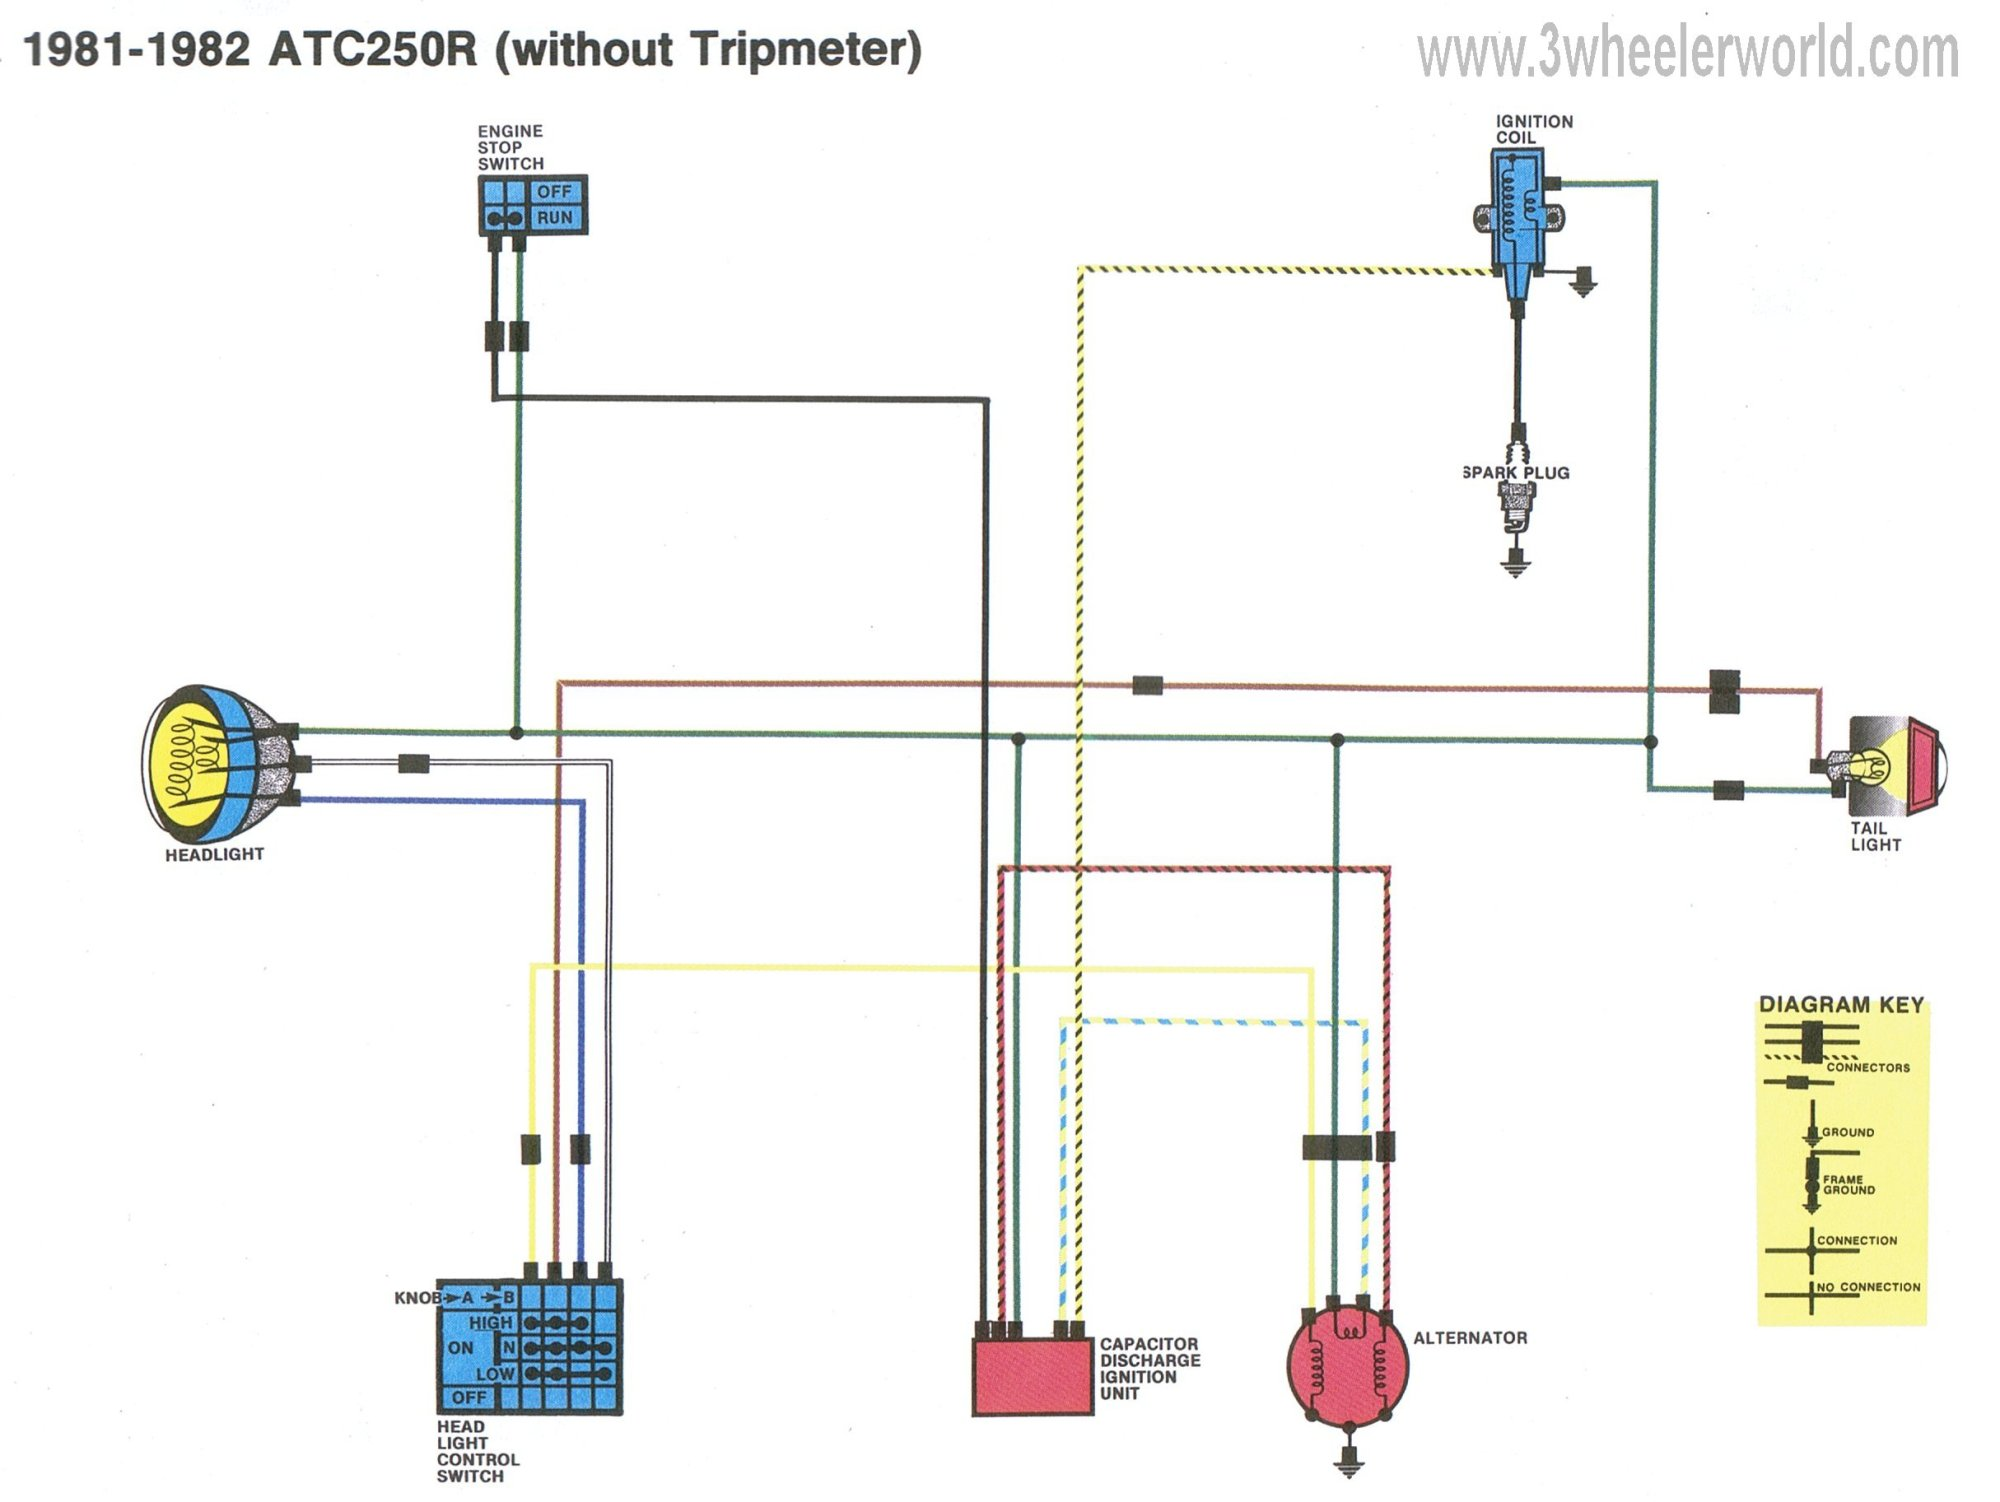 hight resolution of 86 lt250r wiring diagram wiring diagram ebook lt250r engine diagram